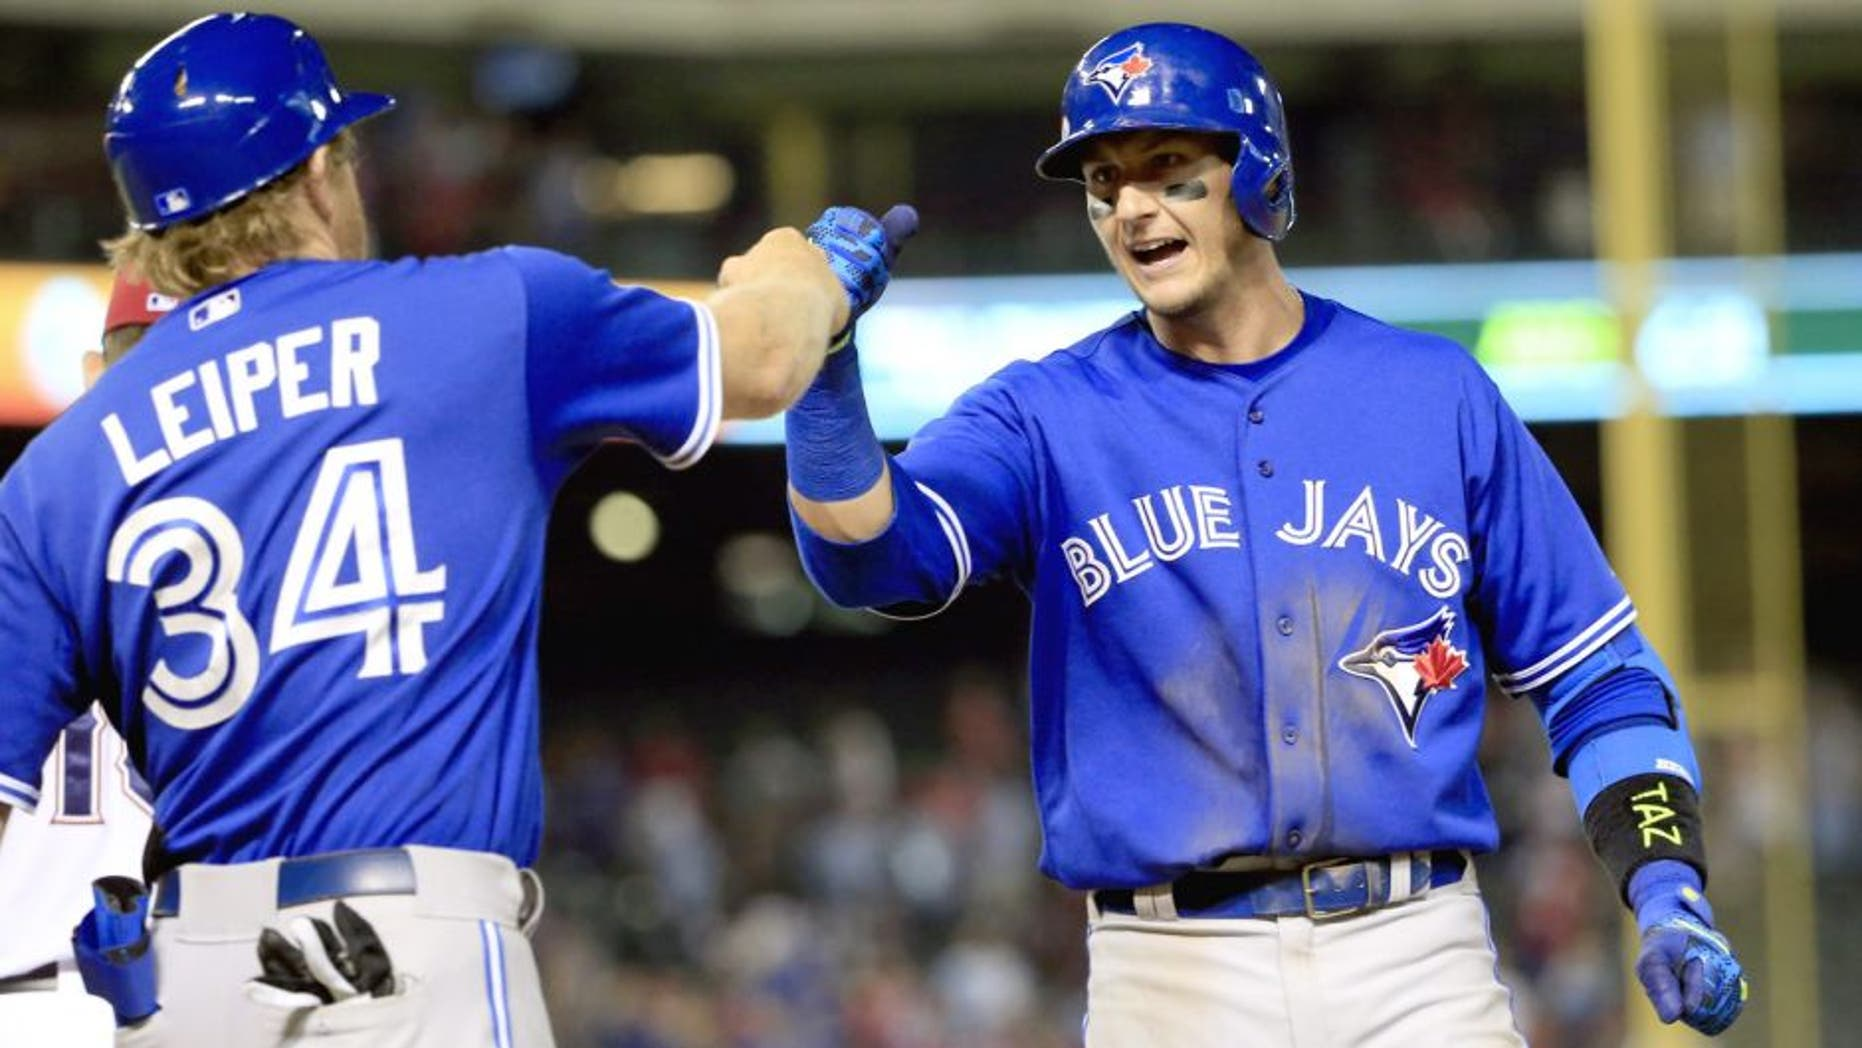 Aug 25, 2015; Arlington, TX, USA; Toronto Blue Jays shortstop Troy Tulowitzki (2) celebrates with first base coach Tim Leiper (34) after hitting the game tying single against the Texas Rangers during the ninth inning at Globe Life Park in Arlington. Mandatory Credit: Kevin Jairaj-USA TODAY Sports